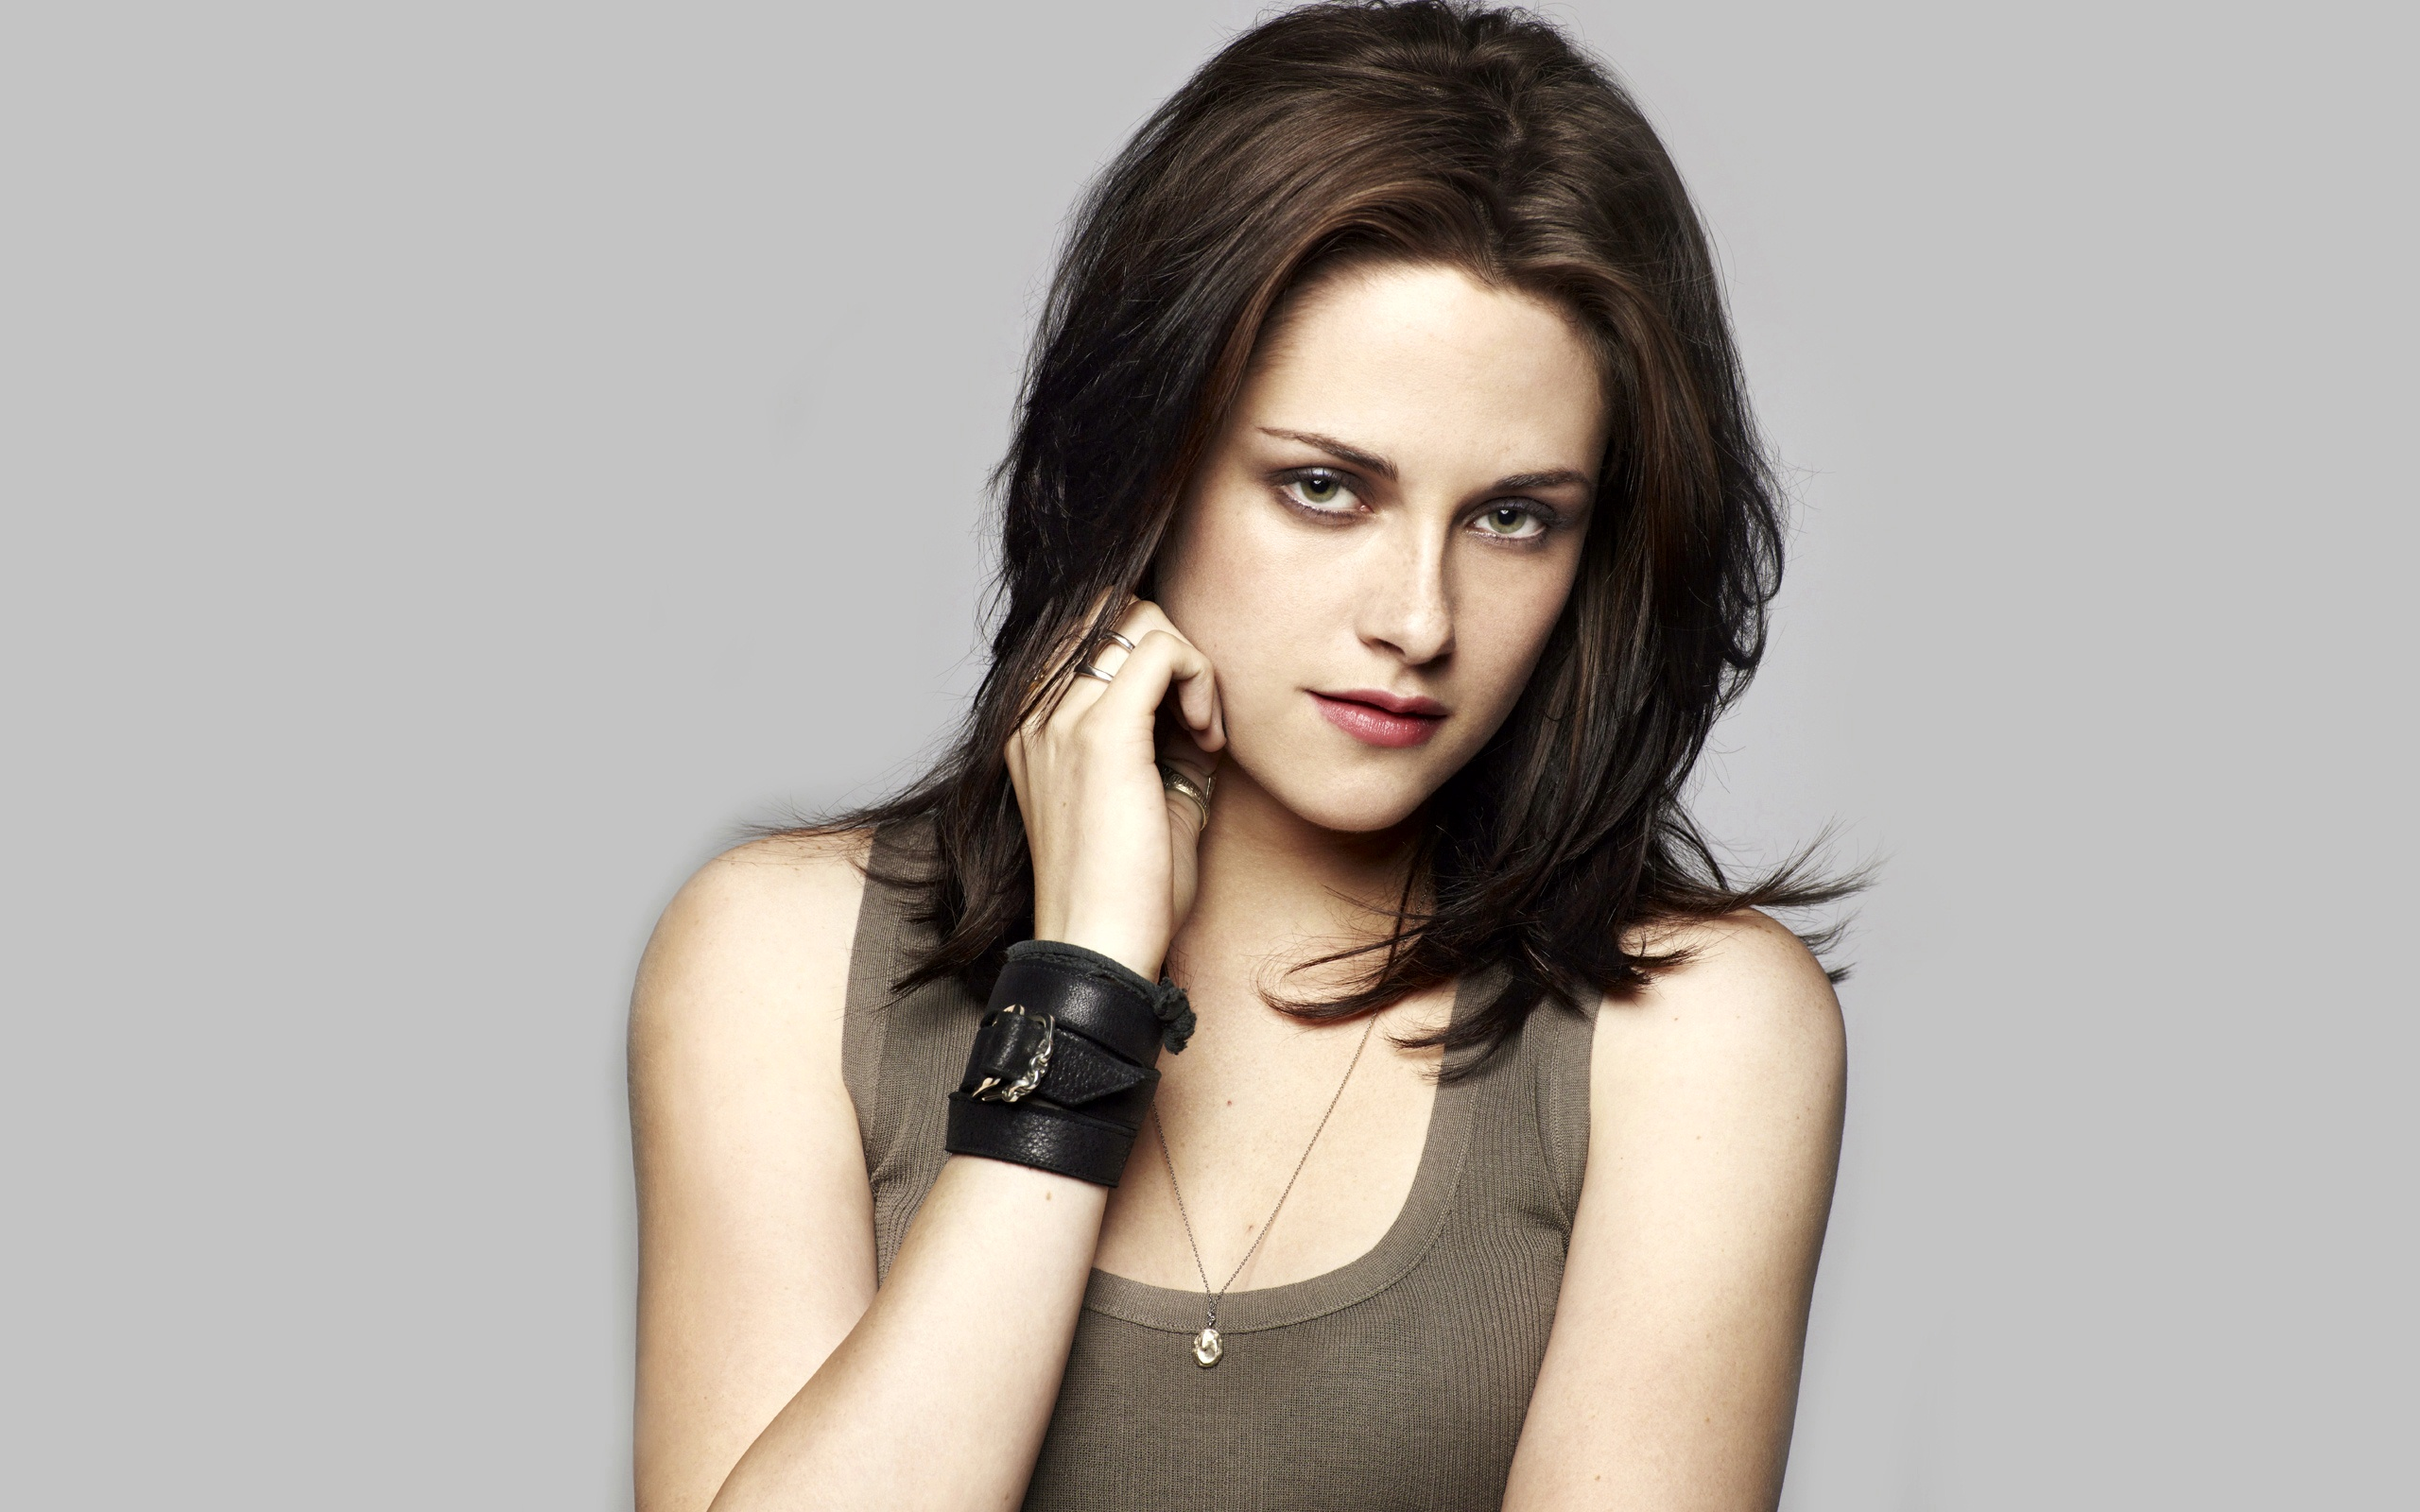 Celebrity - Kristen Stewart  - Brunette - Celebrity - Cute Wallpaper